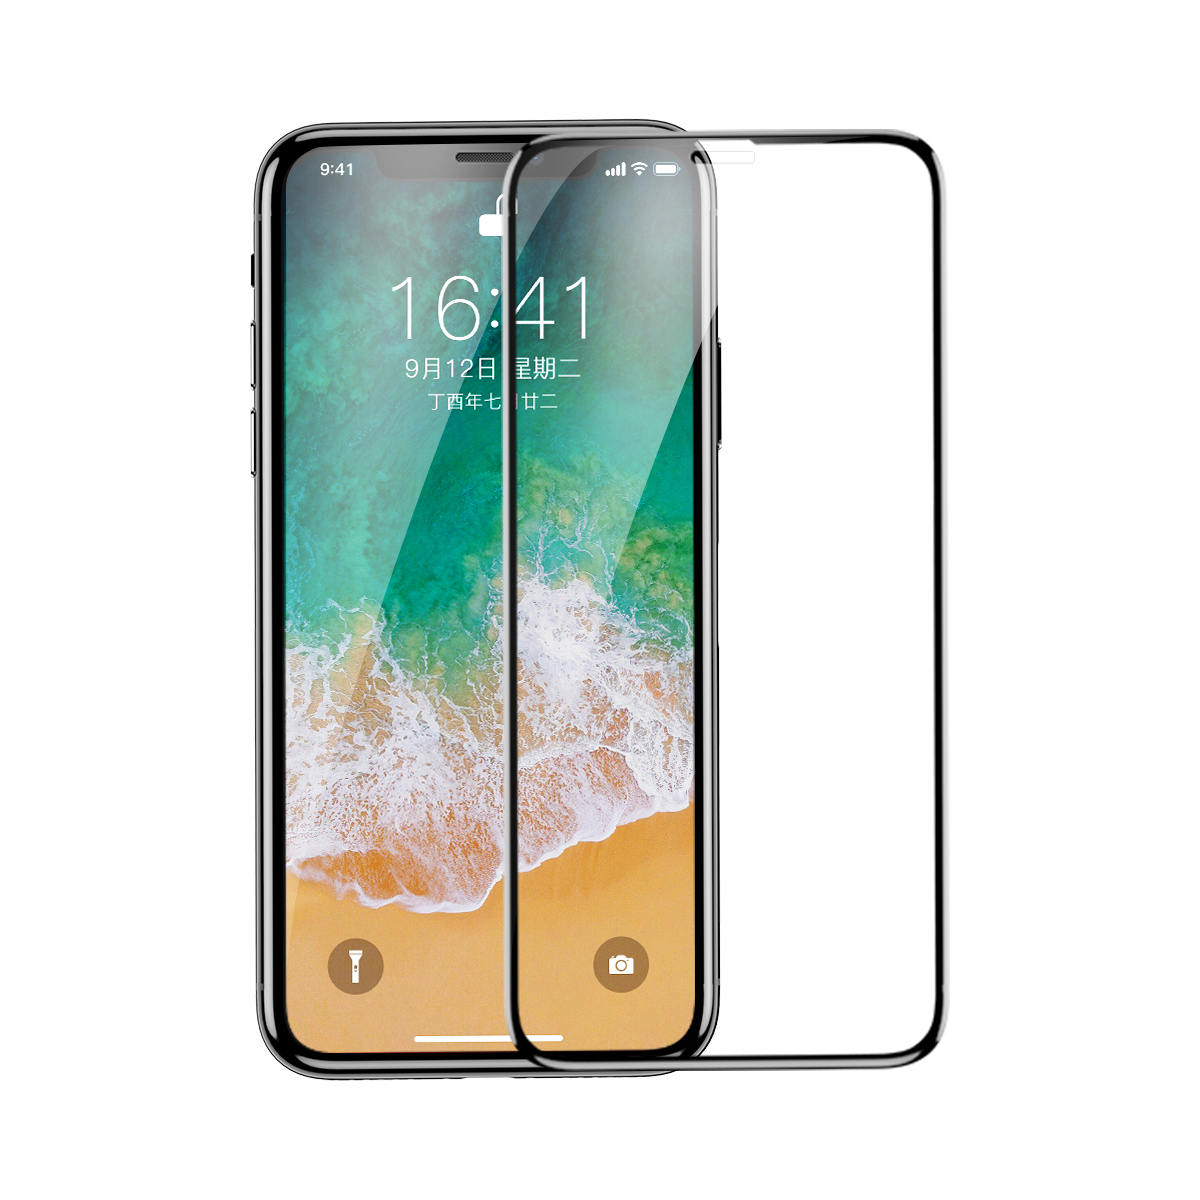 Защитное стекло Baseus 0.3mm Diamond Body All-screen Arc-surface Tempered Glass Film For iPhone X/XS SGAPIPHX-AJG01 (Черный)